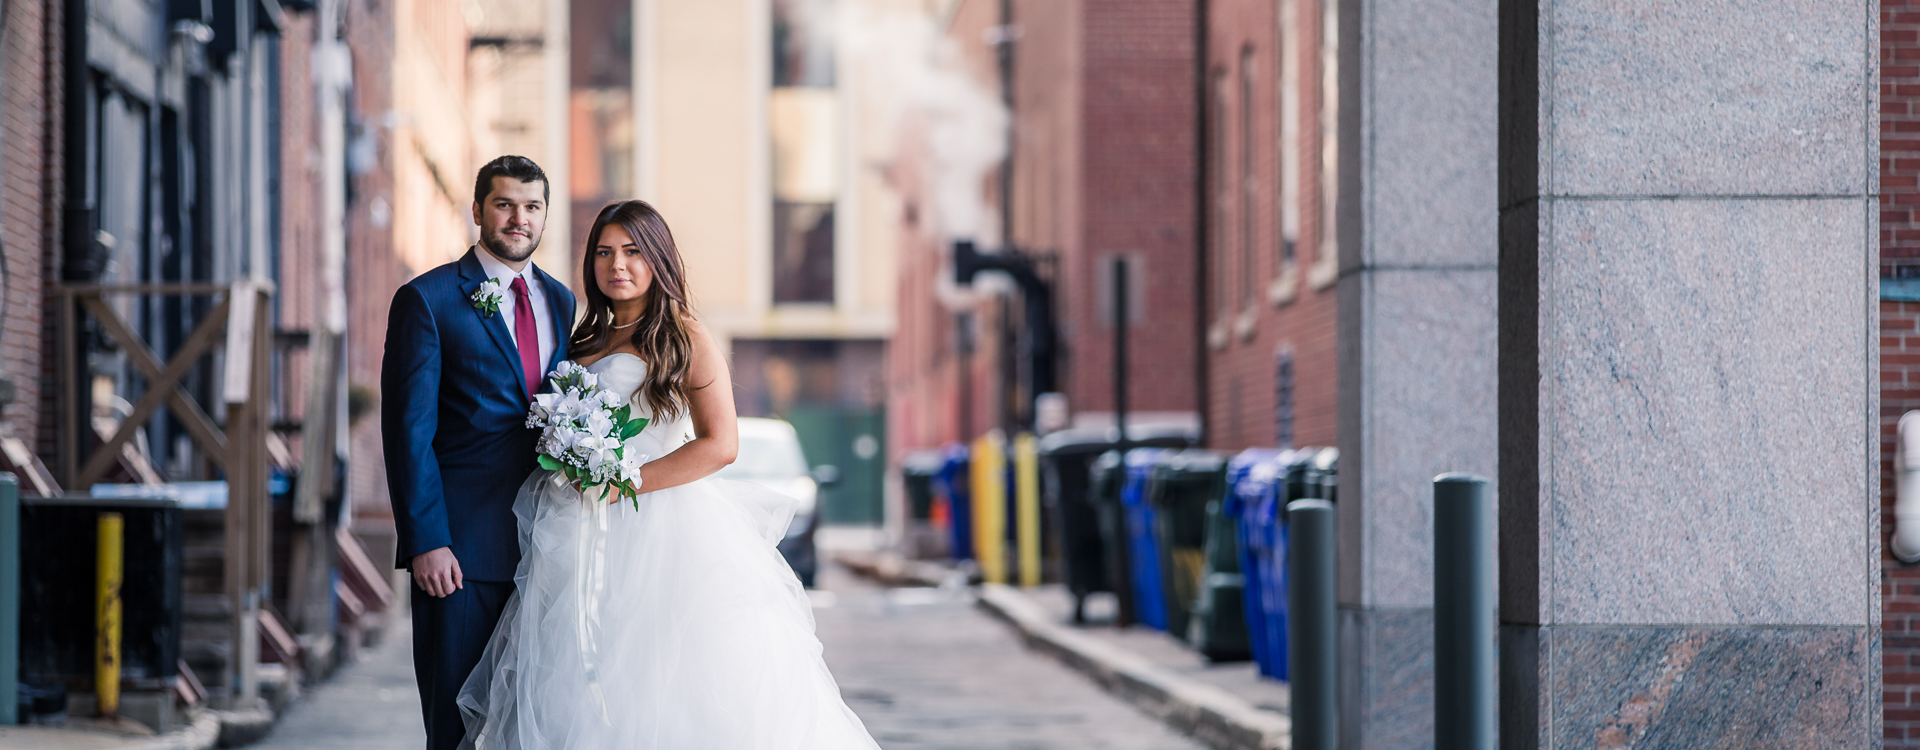 Vest | Manchester NH City Hall Elopement - Lee Germeroth Photography